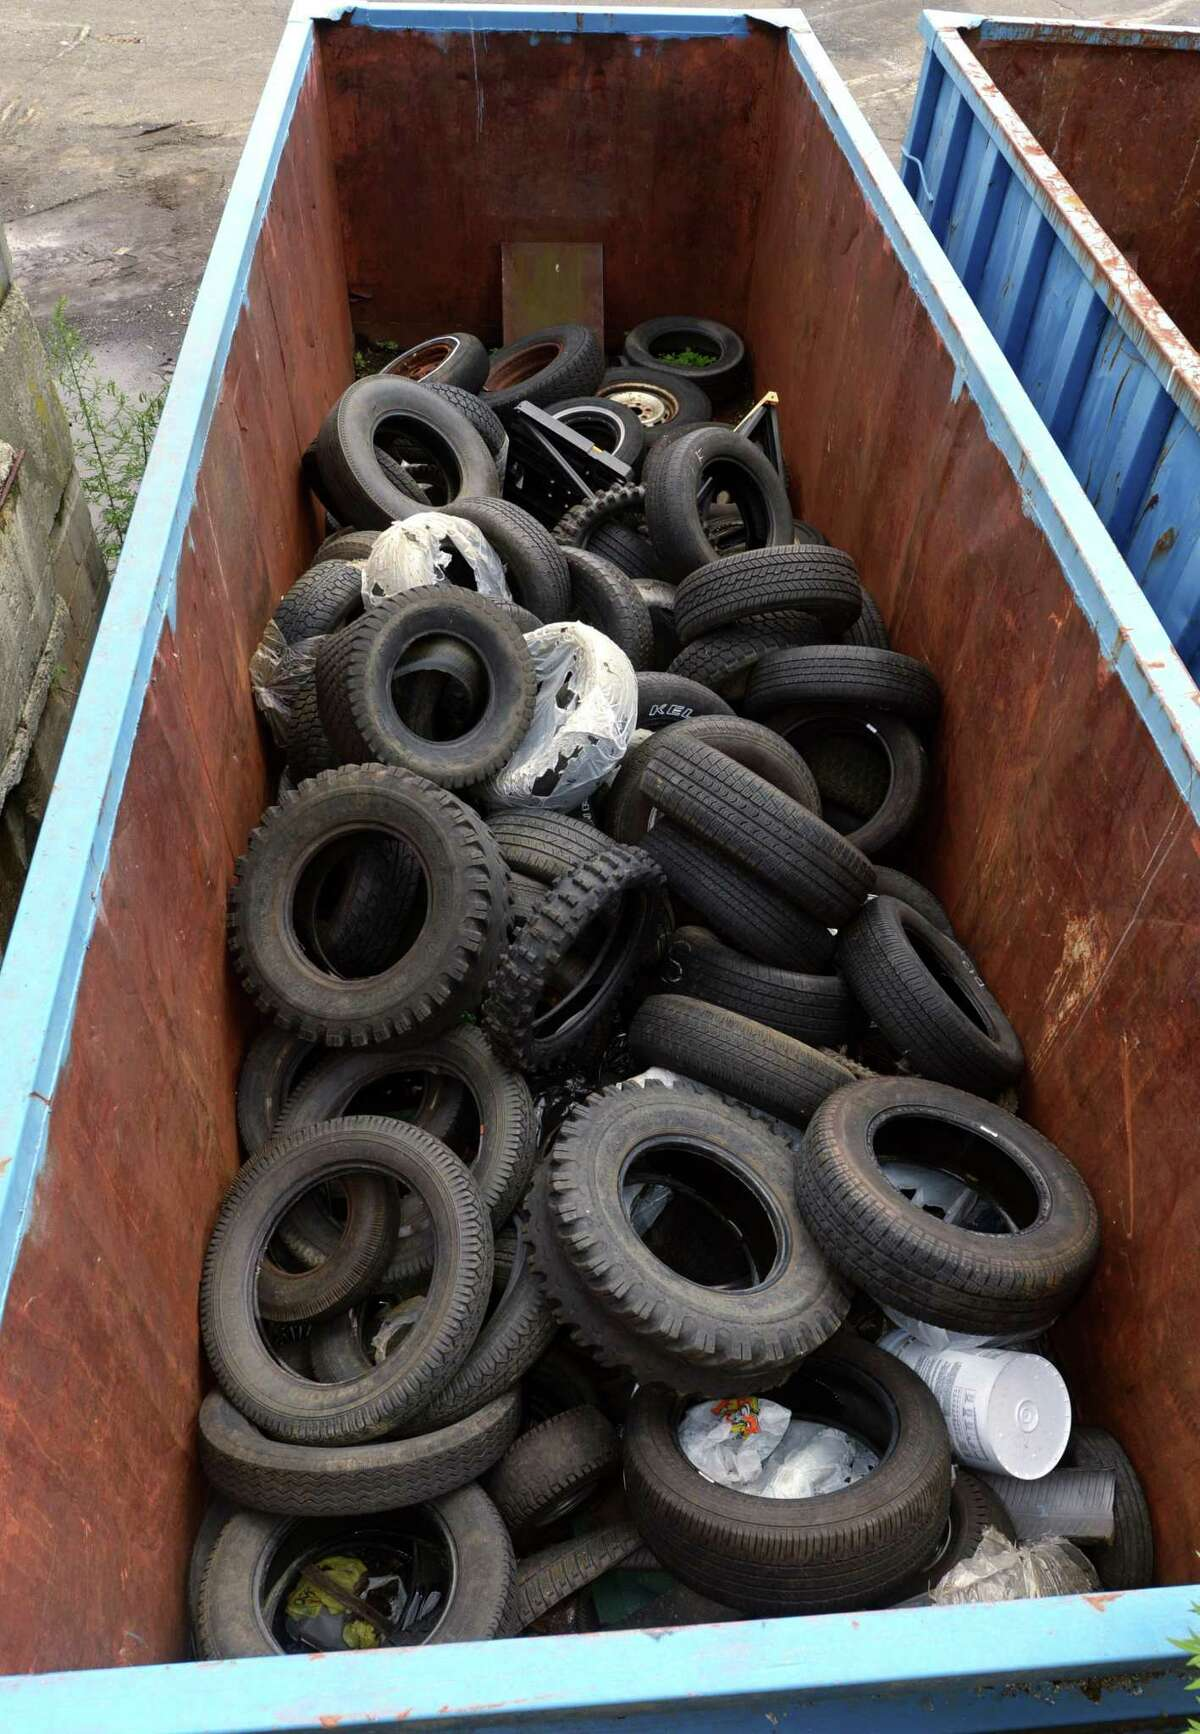 Officials representing 17 towns along the Lower Connecticut River Valley are calling on state lawmakers to adopt legislation that would shift much of the burden onto manufacturers to keep discarded tires, gas tanks and smoke detectors from ending up in landfills or along the river.